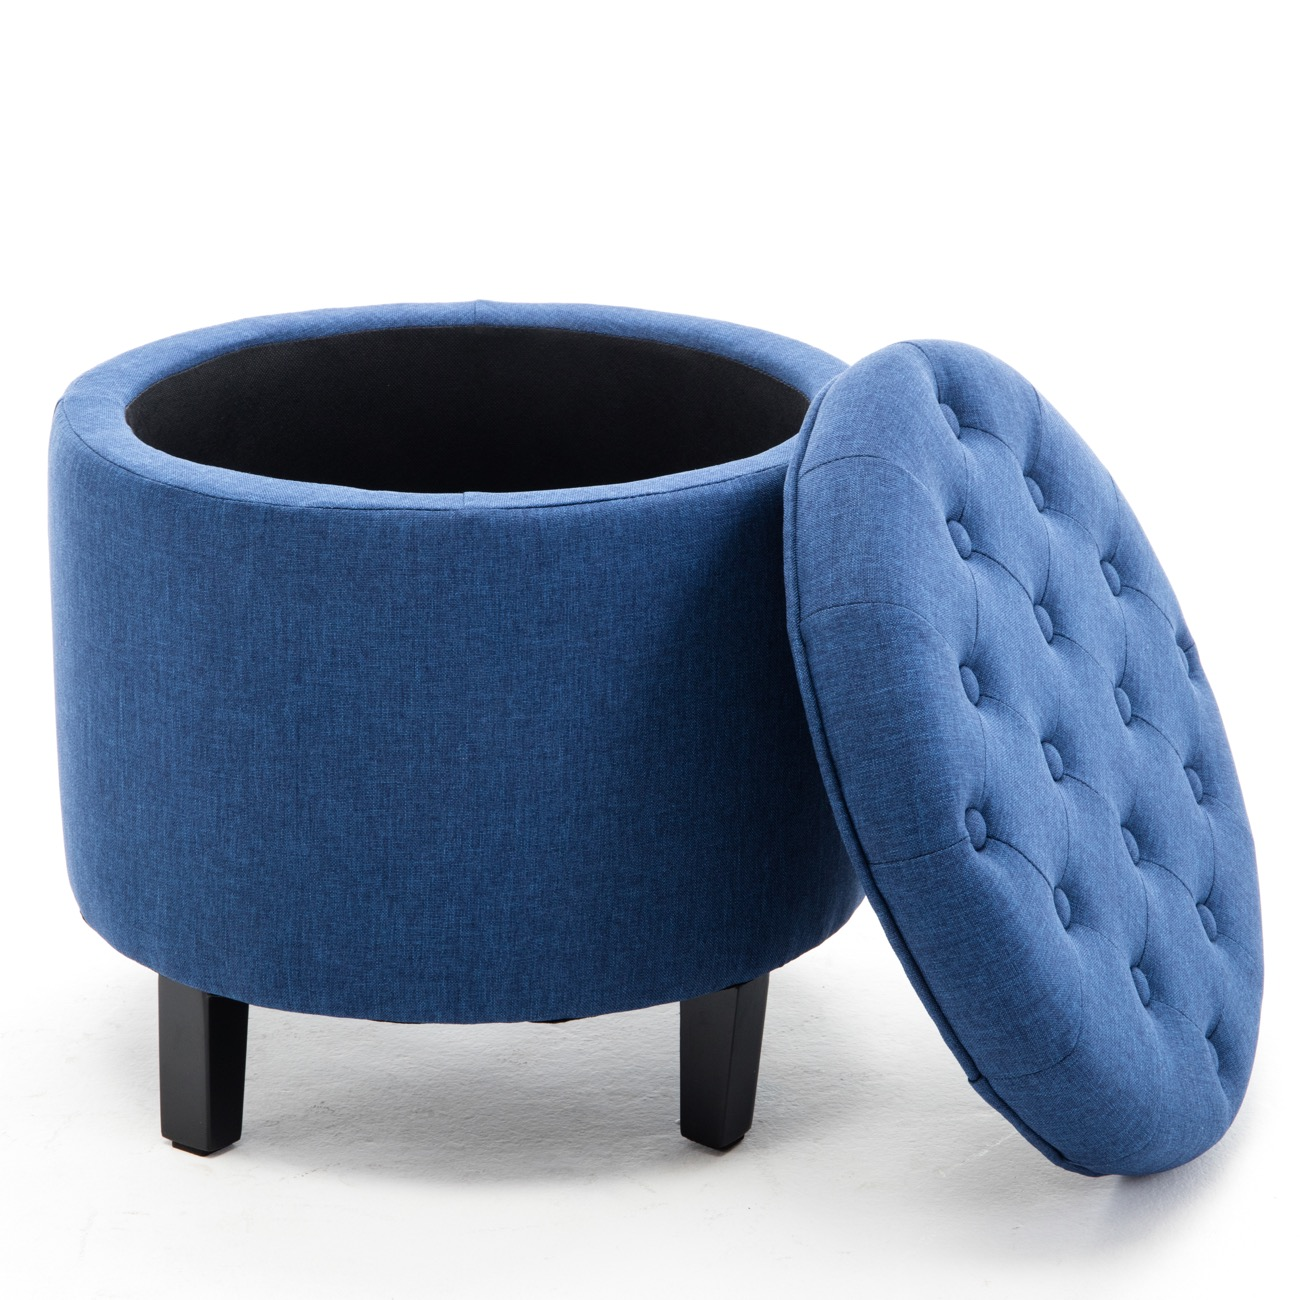 Belleze Nailhead Round Tufted Storage Ottoman Large Footrest Stool Coffee Table Lift Top, Blue